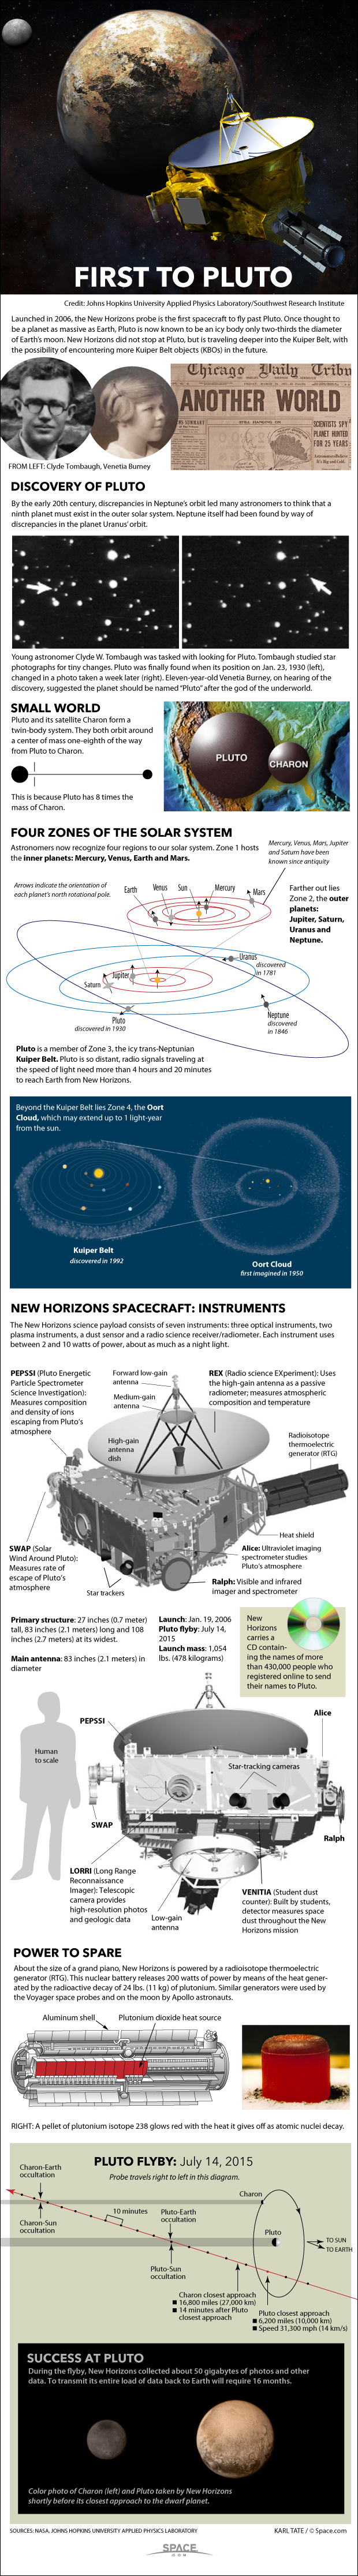 Diagrams show New Horizons encounter with Pluto